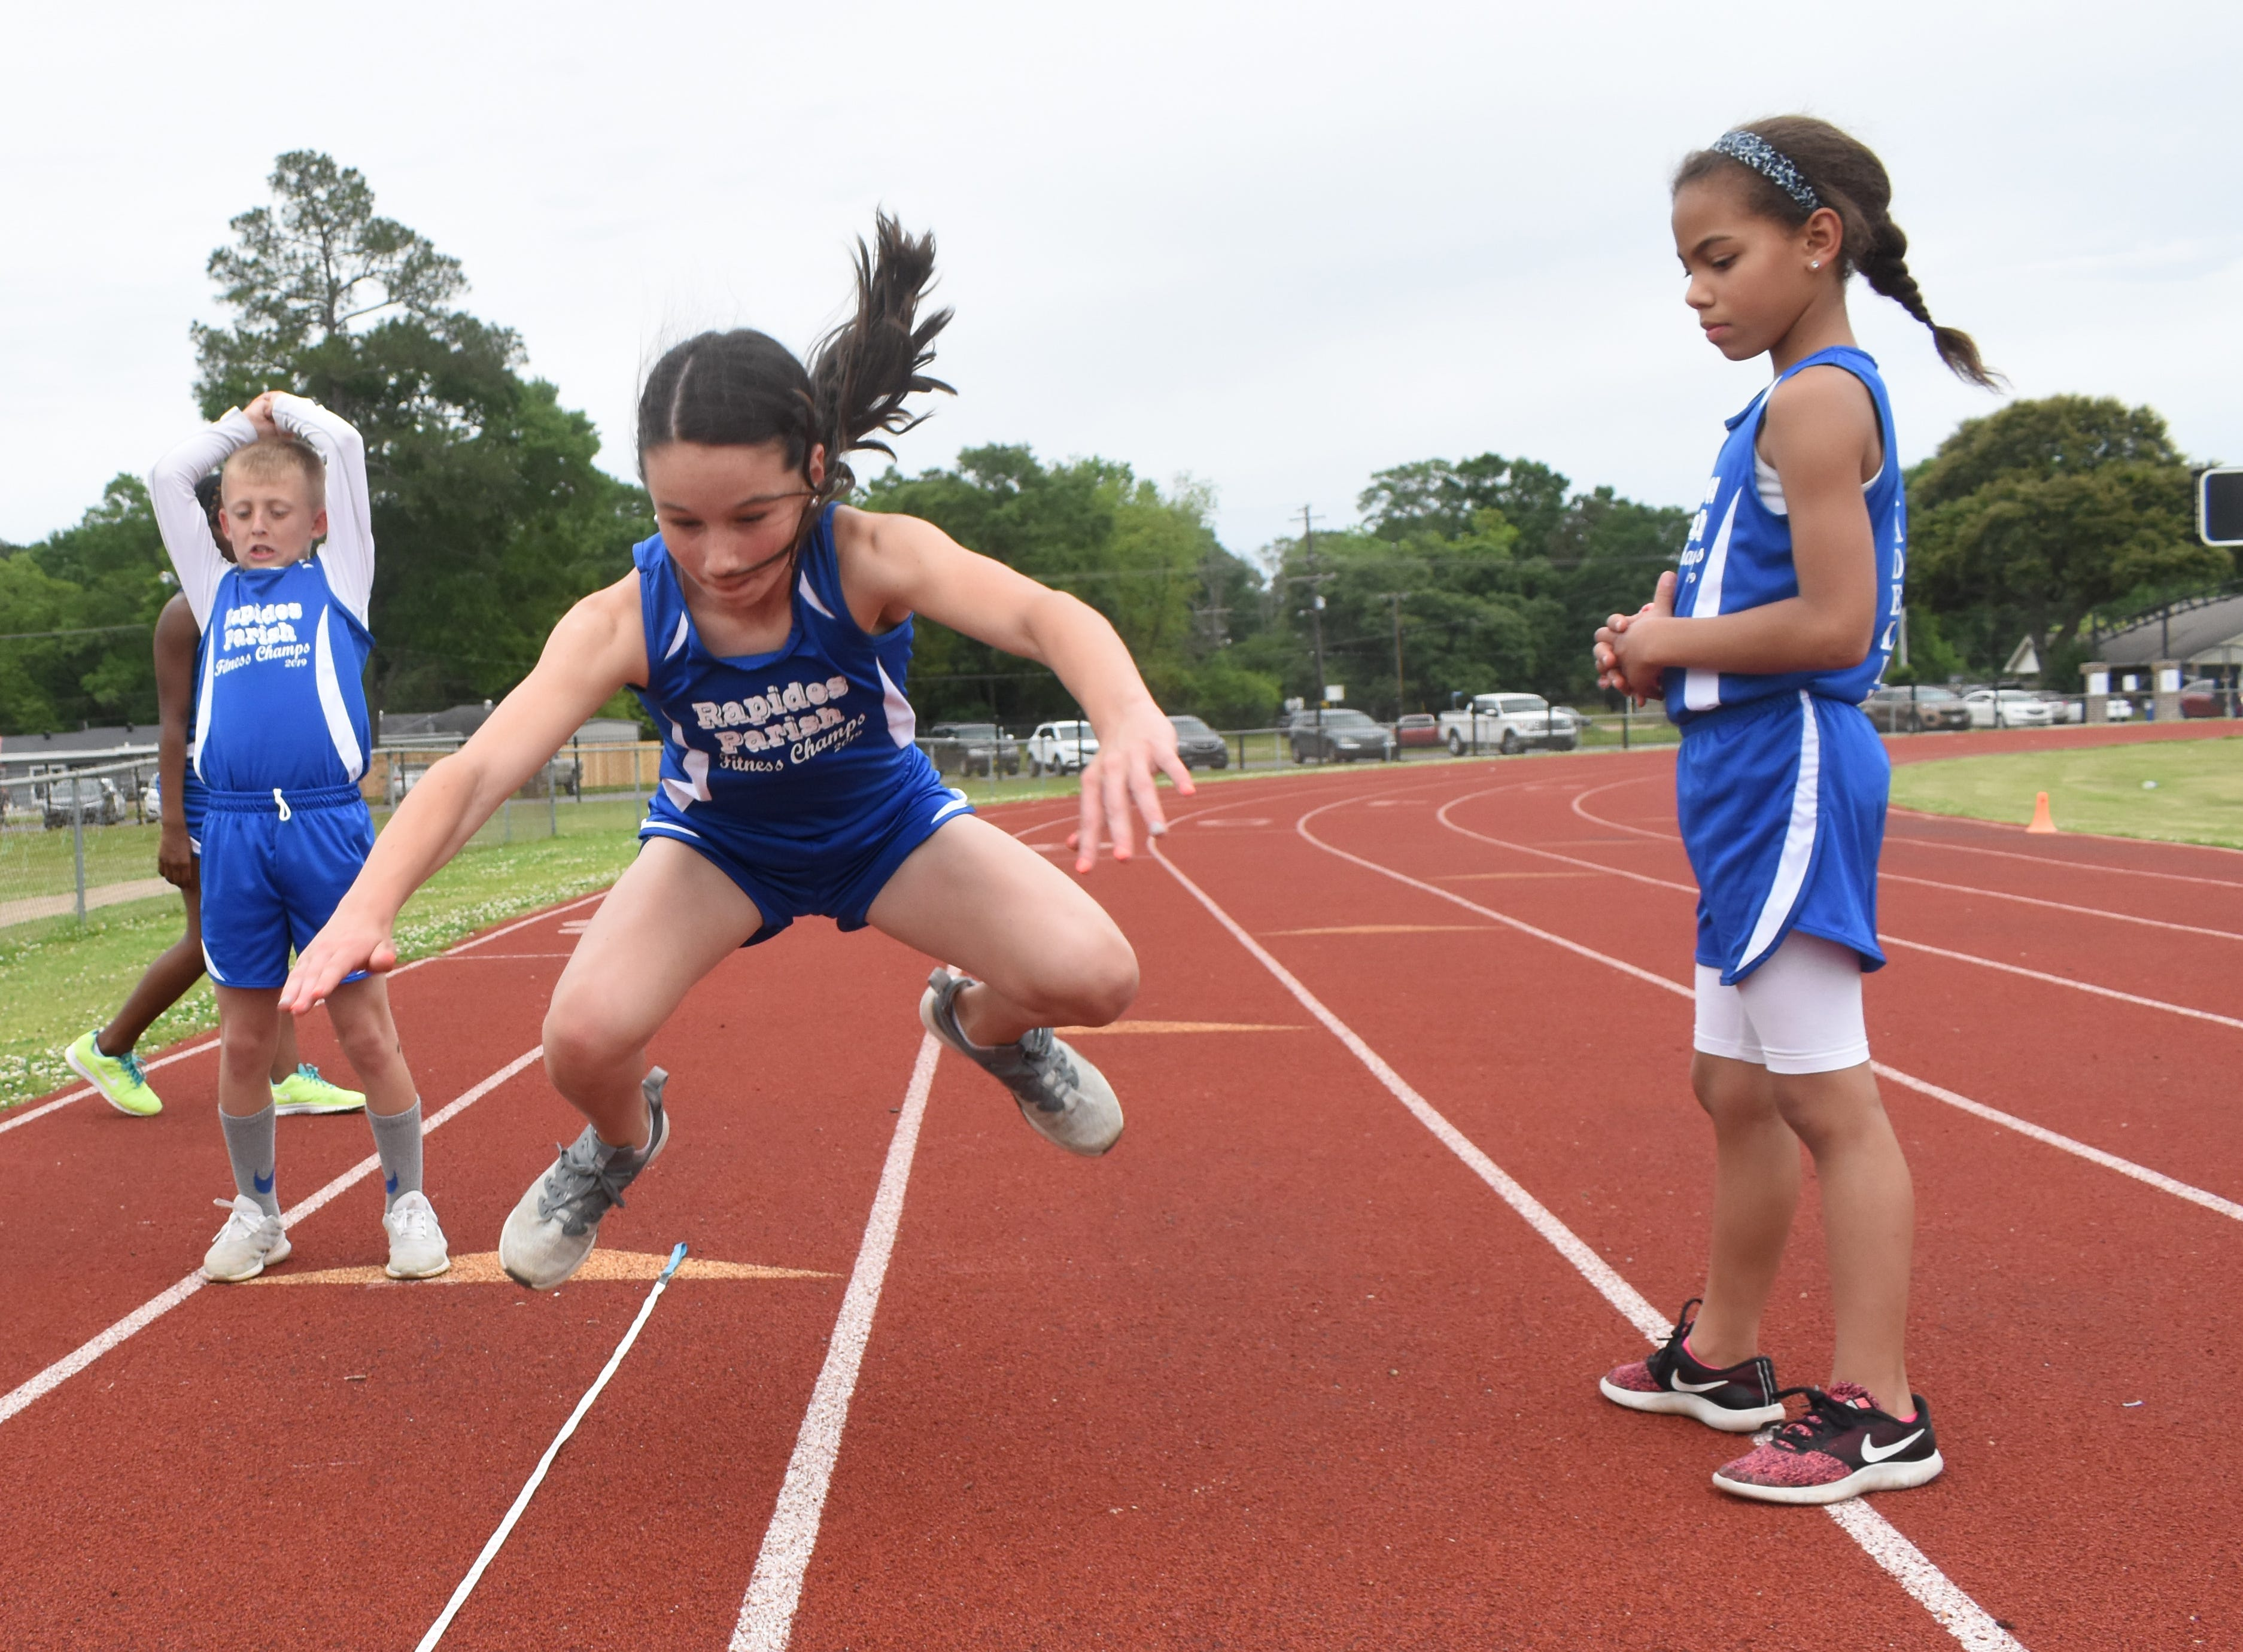 Aubree Davis of Ball Elementary School complete a long jump. Aubree is part the 2019 Rapides Parish Fitness Team. Aubree and five other Rapides Parish elementary school students will compete in the 2019 State Championship Fitness Meet to be held Saturday, April 27, 2019 at Alexandria Senior High School. The meet is part of the Governor's Council on Fitness and Sports. Students from throughout Louisiana will compete in seven events: 50-yard dash, sit and reach, pull-ups,  shuttle run, curl-ups (sit-ups), standing long jump, and the 600-yard run. For the past three years, the Rapides Parish Fitness Team has placed first at the meet. Dean was the highest scoring boy last year and won the title of 2018 Mr. Fitness for the State of Louisiana. The meet will be from 10 a.m. to 2 p.m.